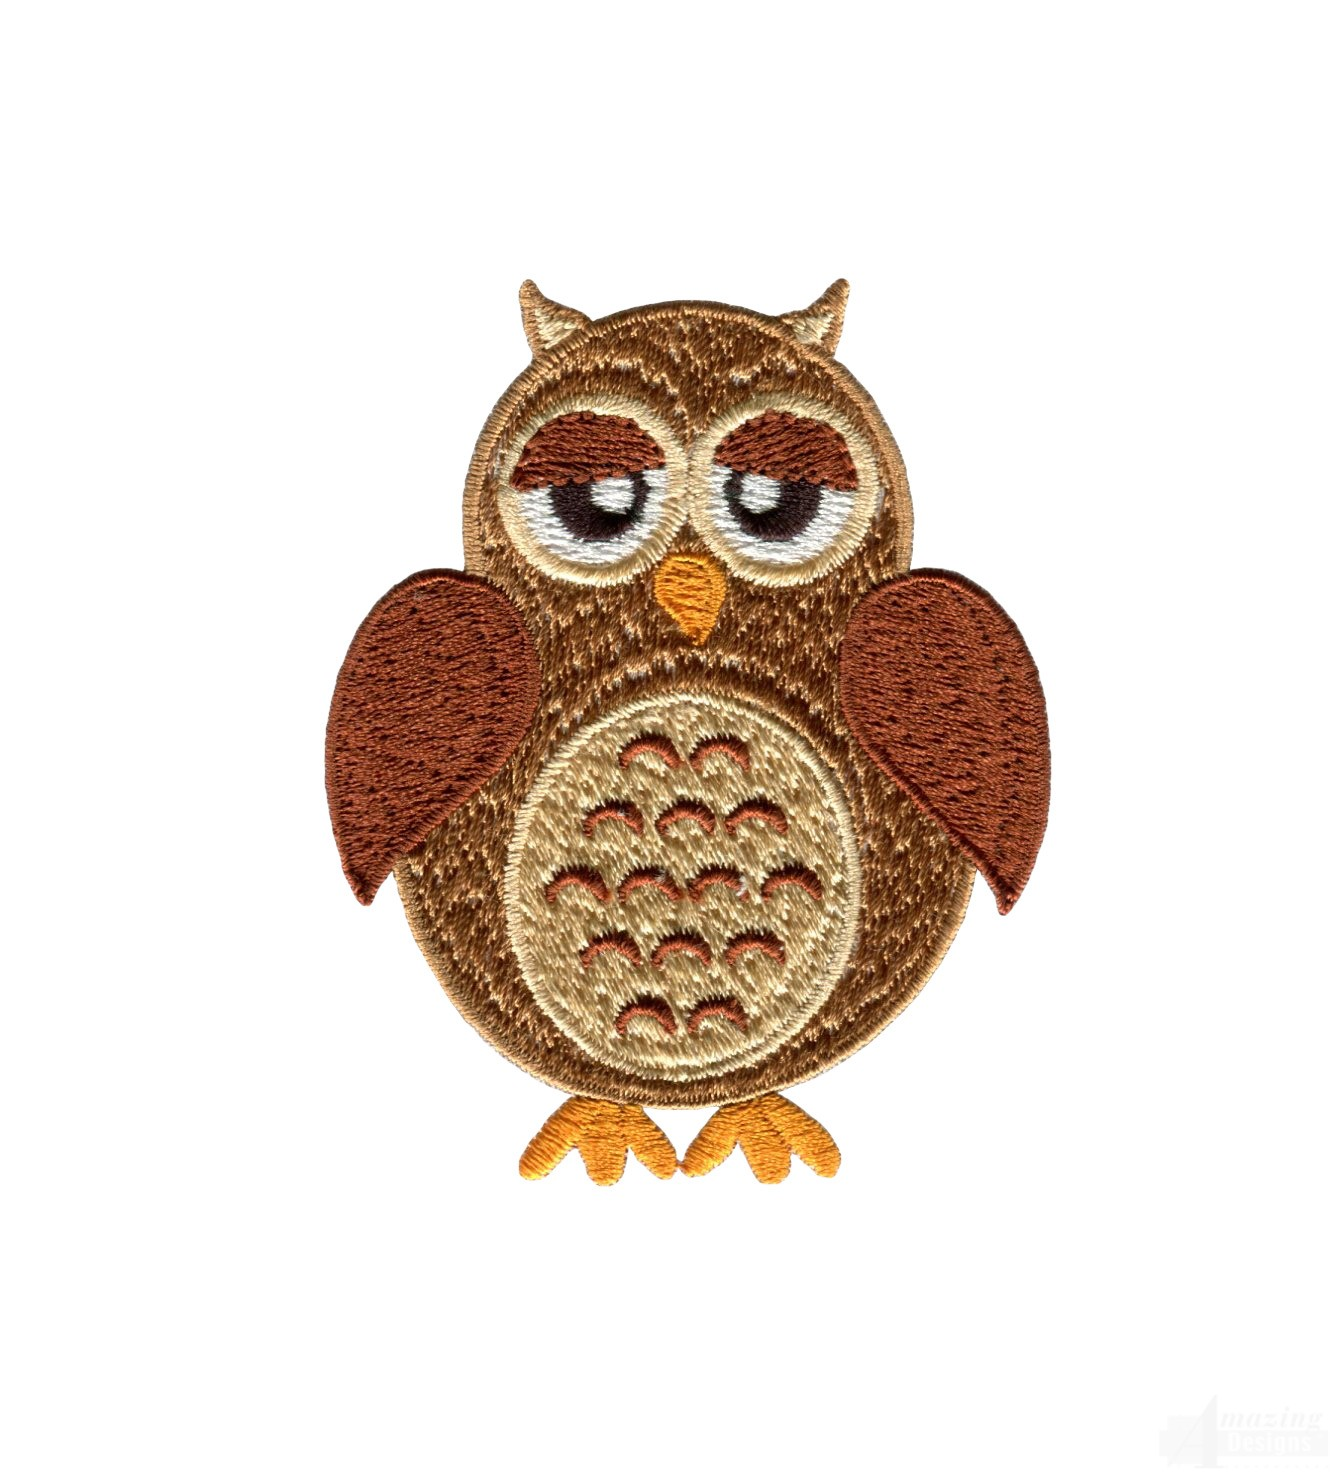 Brown Owl Embroidery Design